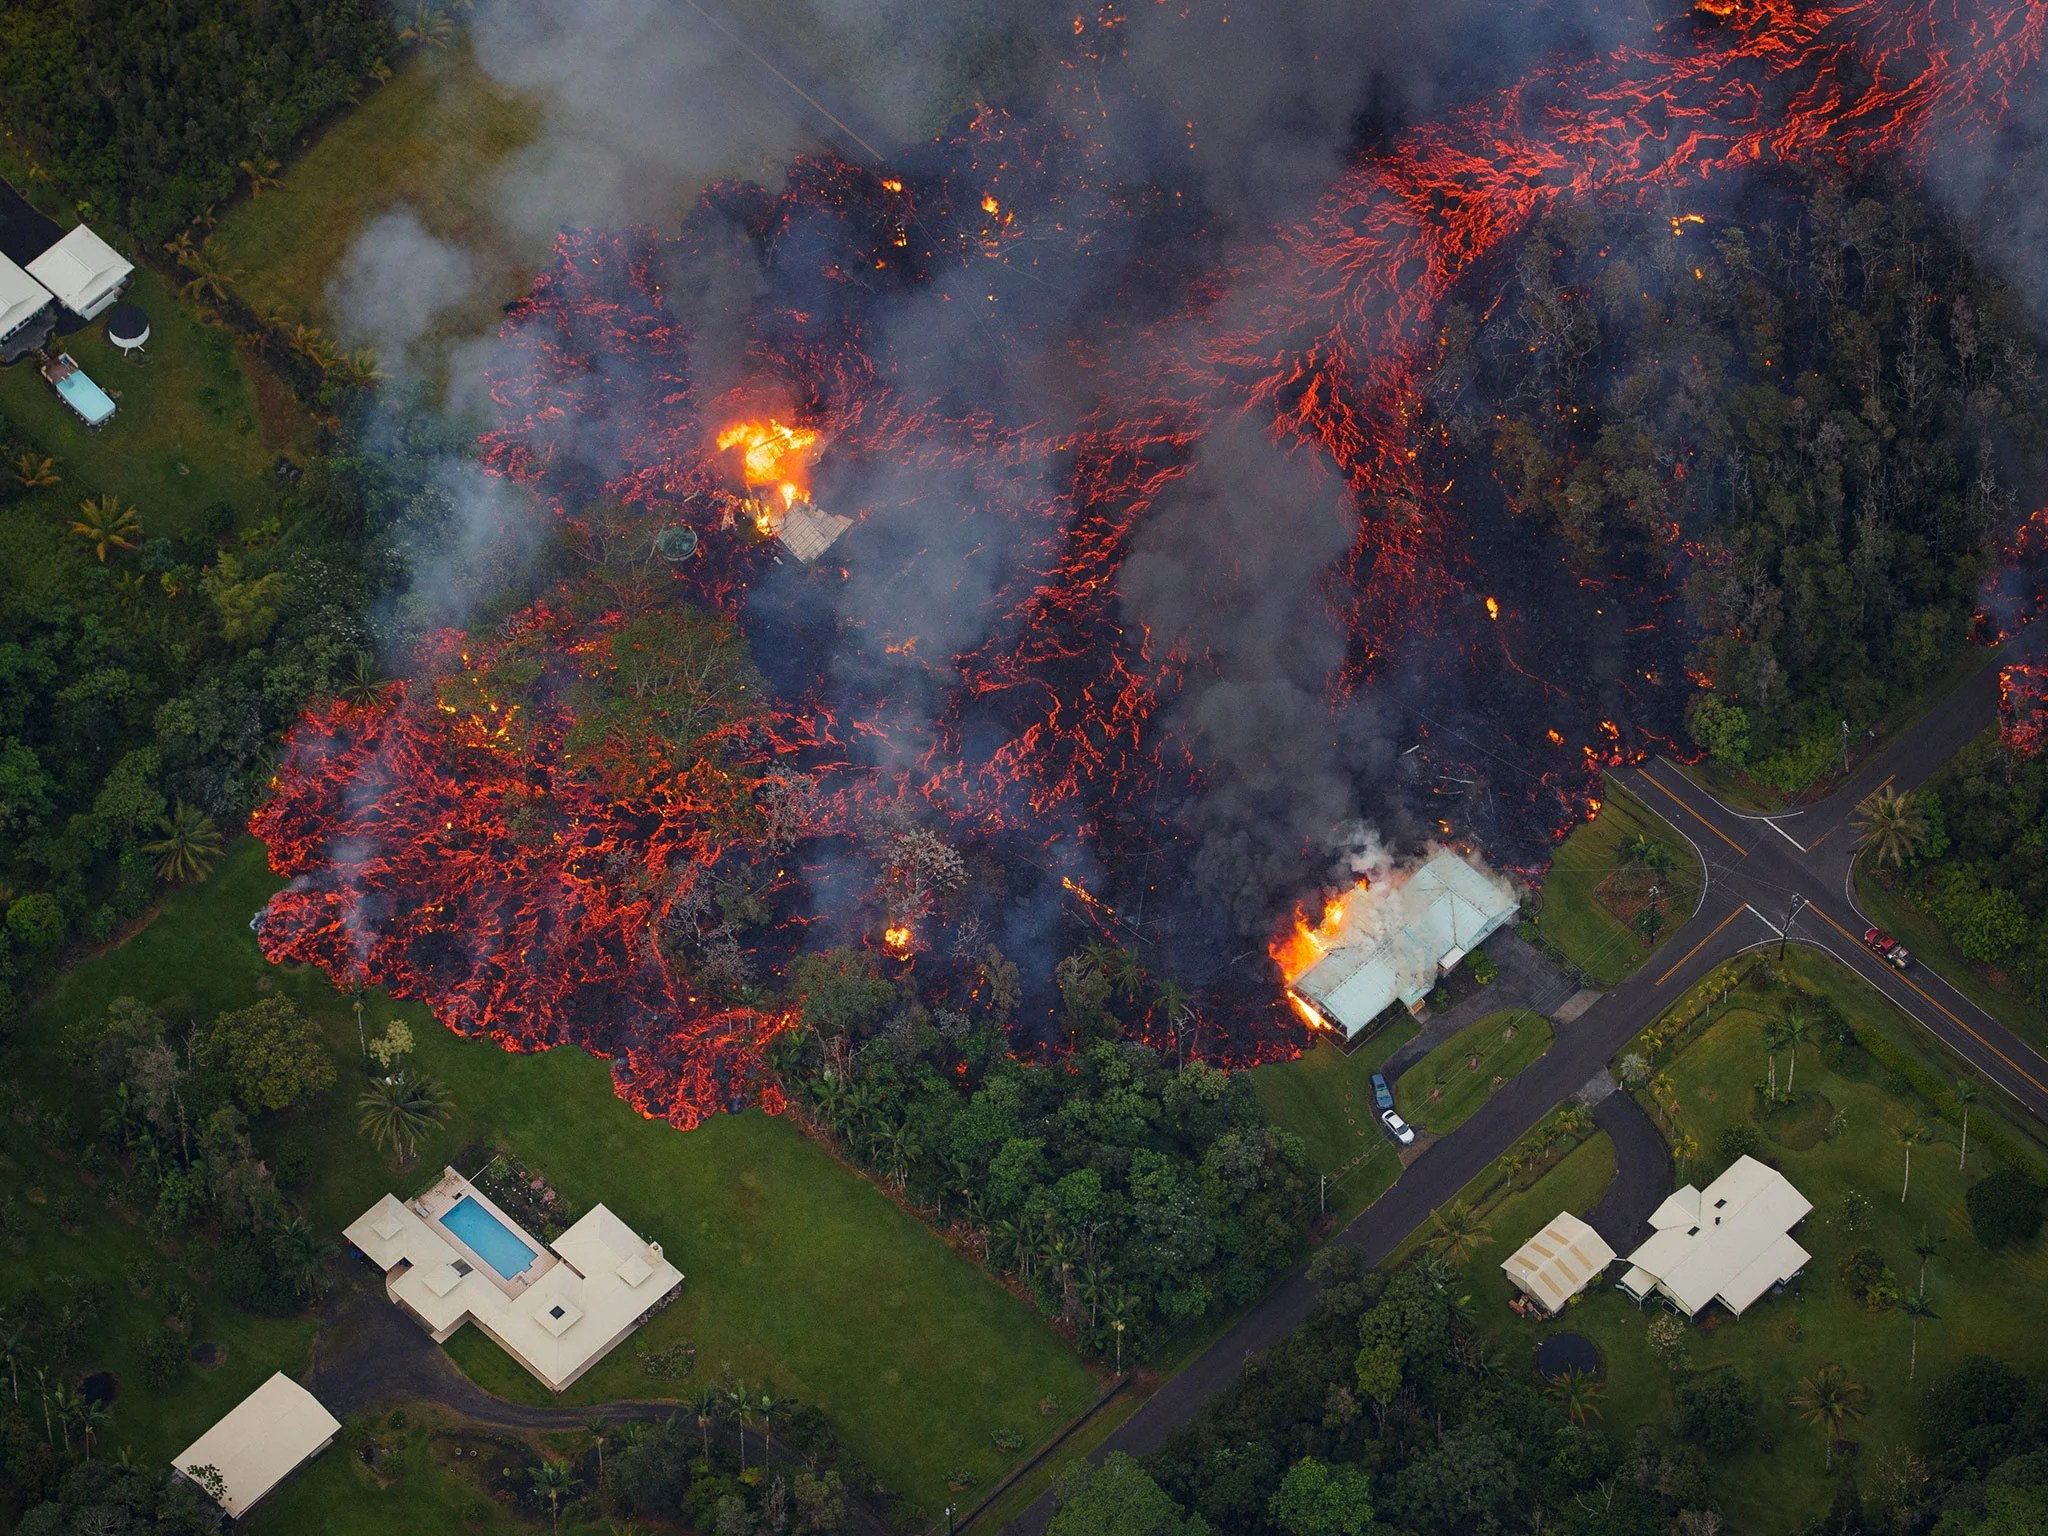 Hawaii Volcano Eruption Latest Families Flee As Rivers Of Lava From Mount Kilauea Engulf Entire